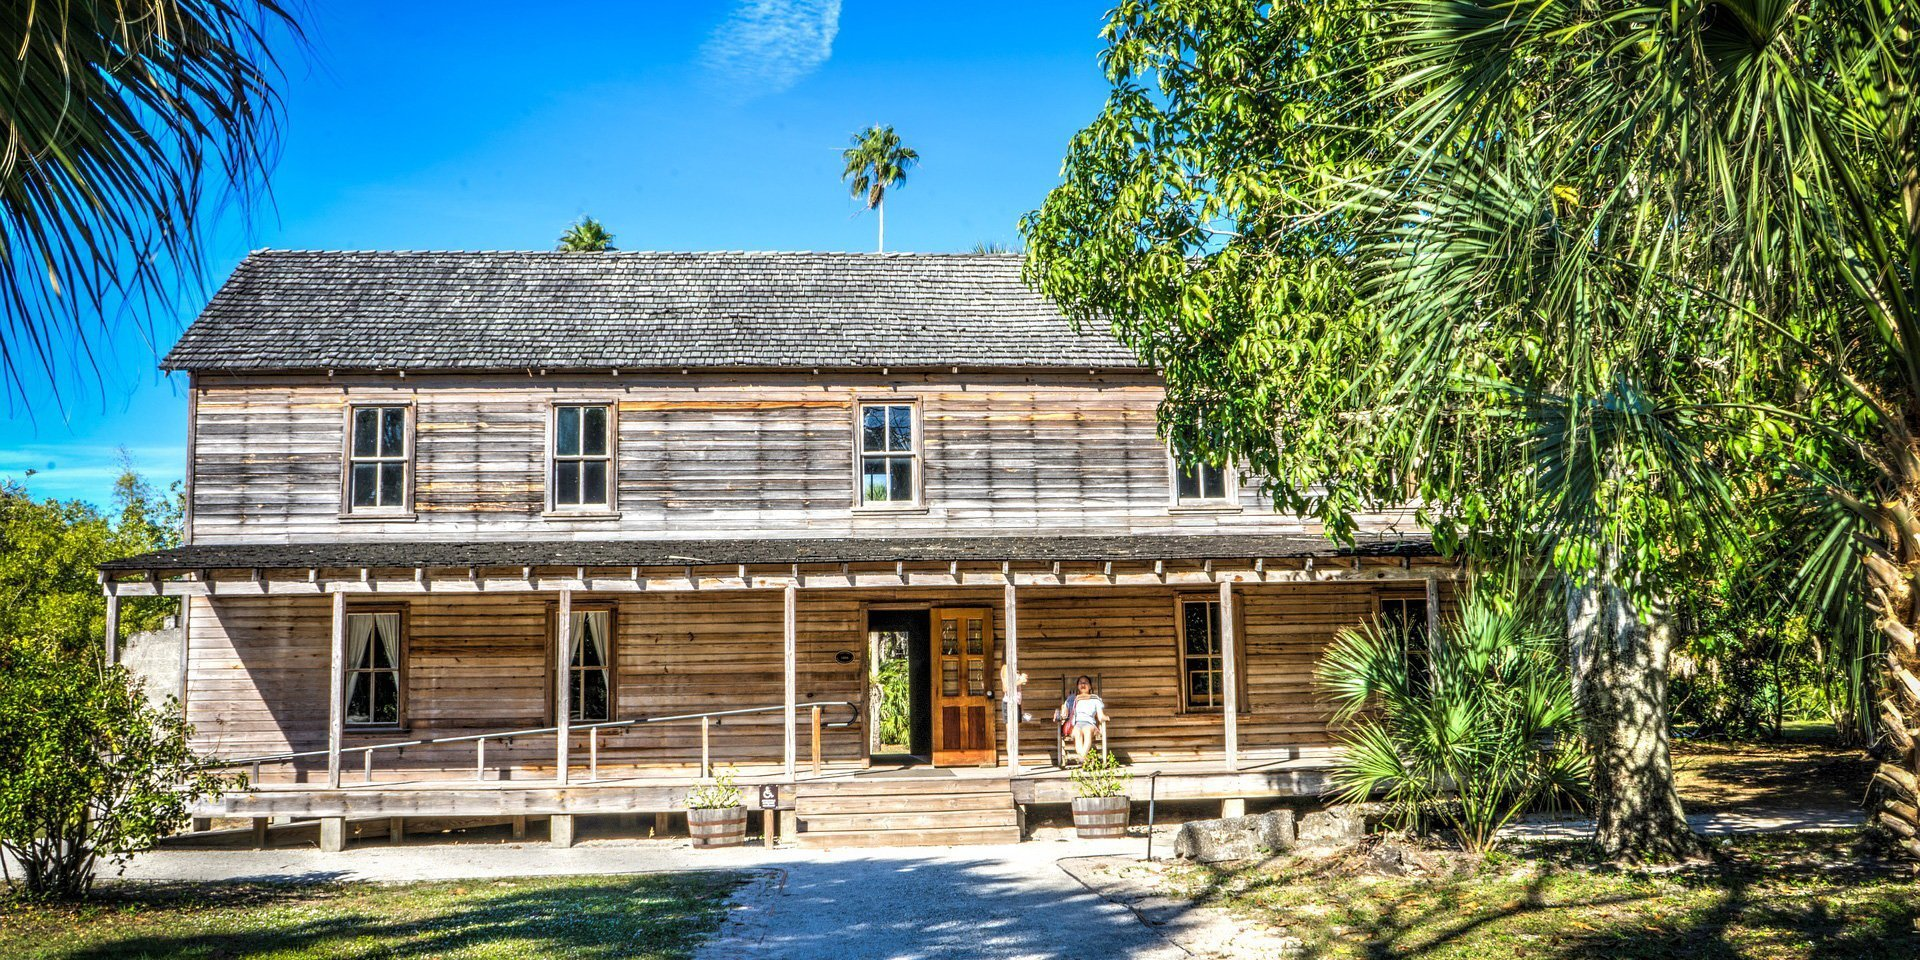 Estero florida is a beautiful place to build your new home located between fort myers and bonita springs estero is a mix of old and new world charm and